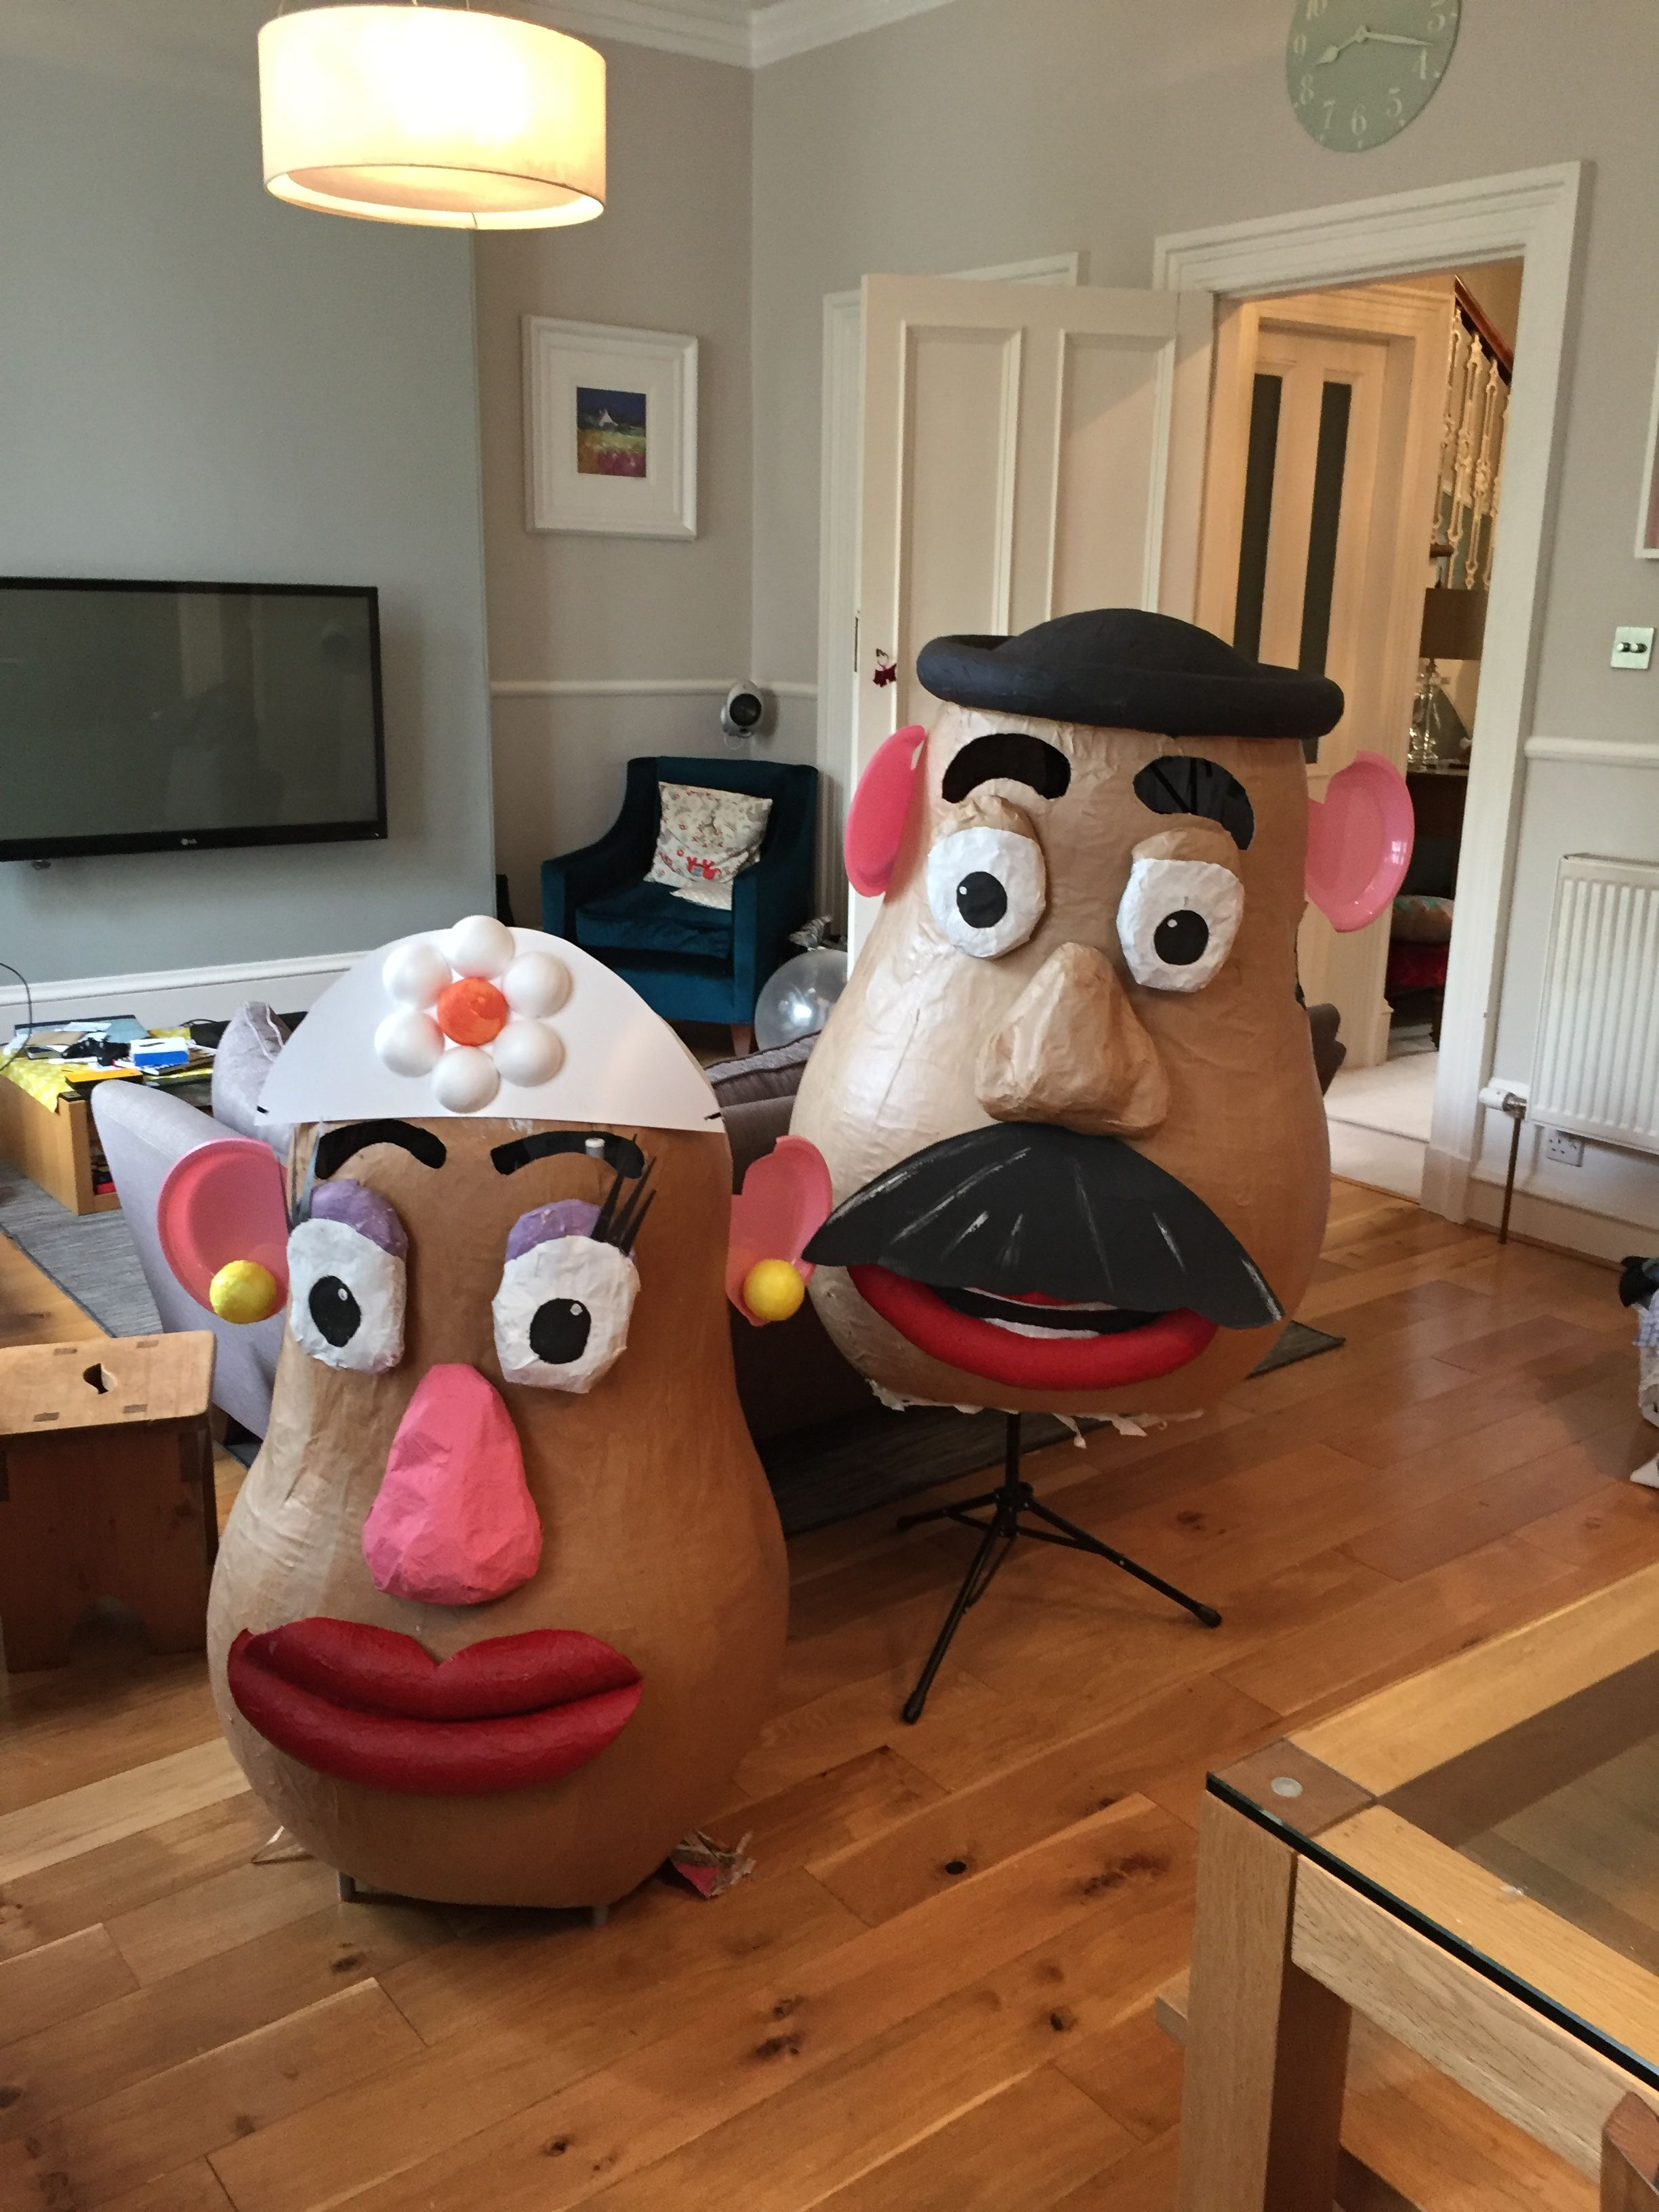 mrs potato head costume #toystory made from paper mache around a